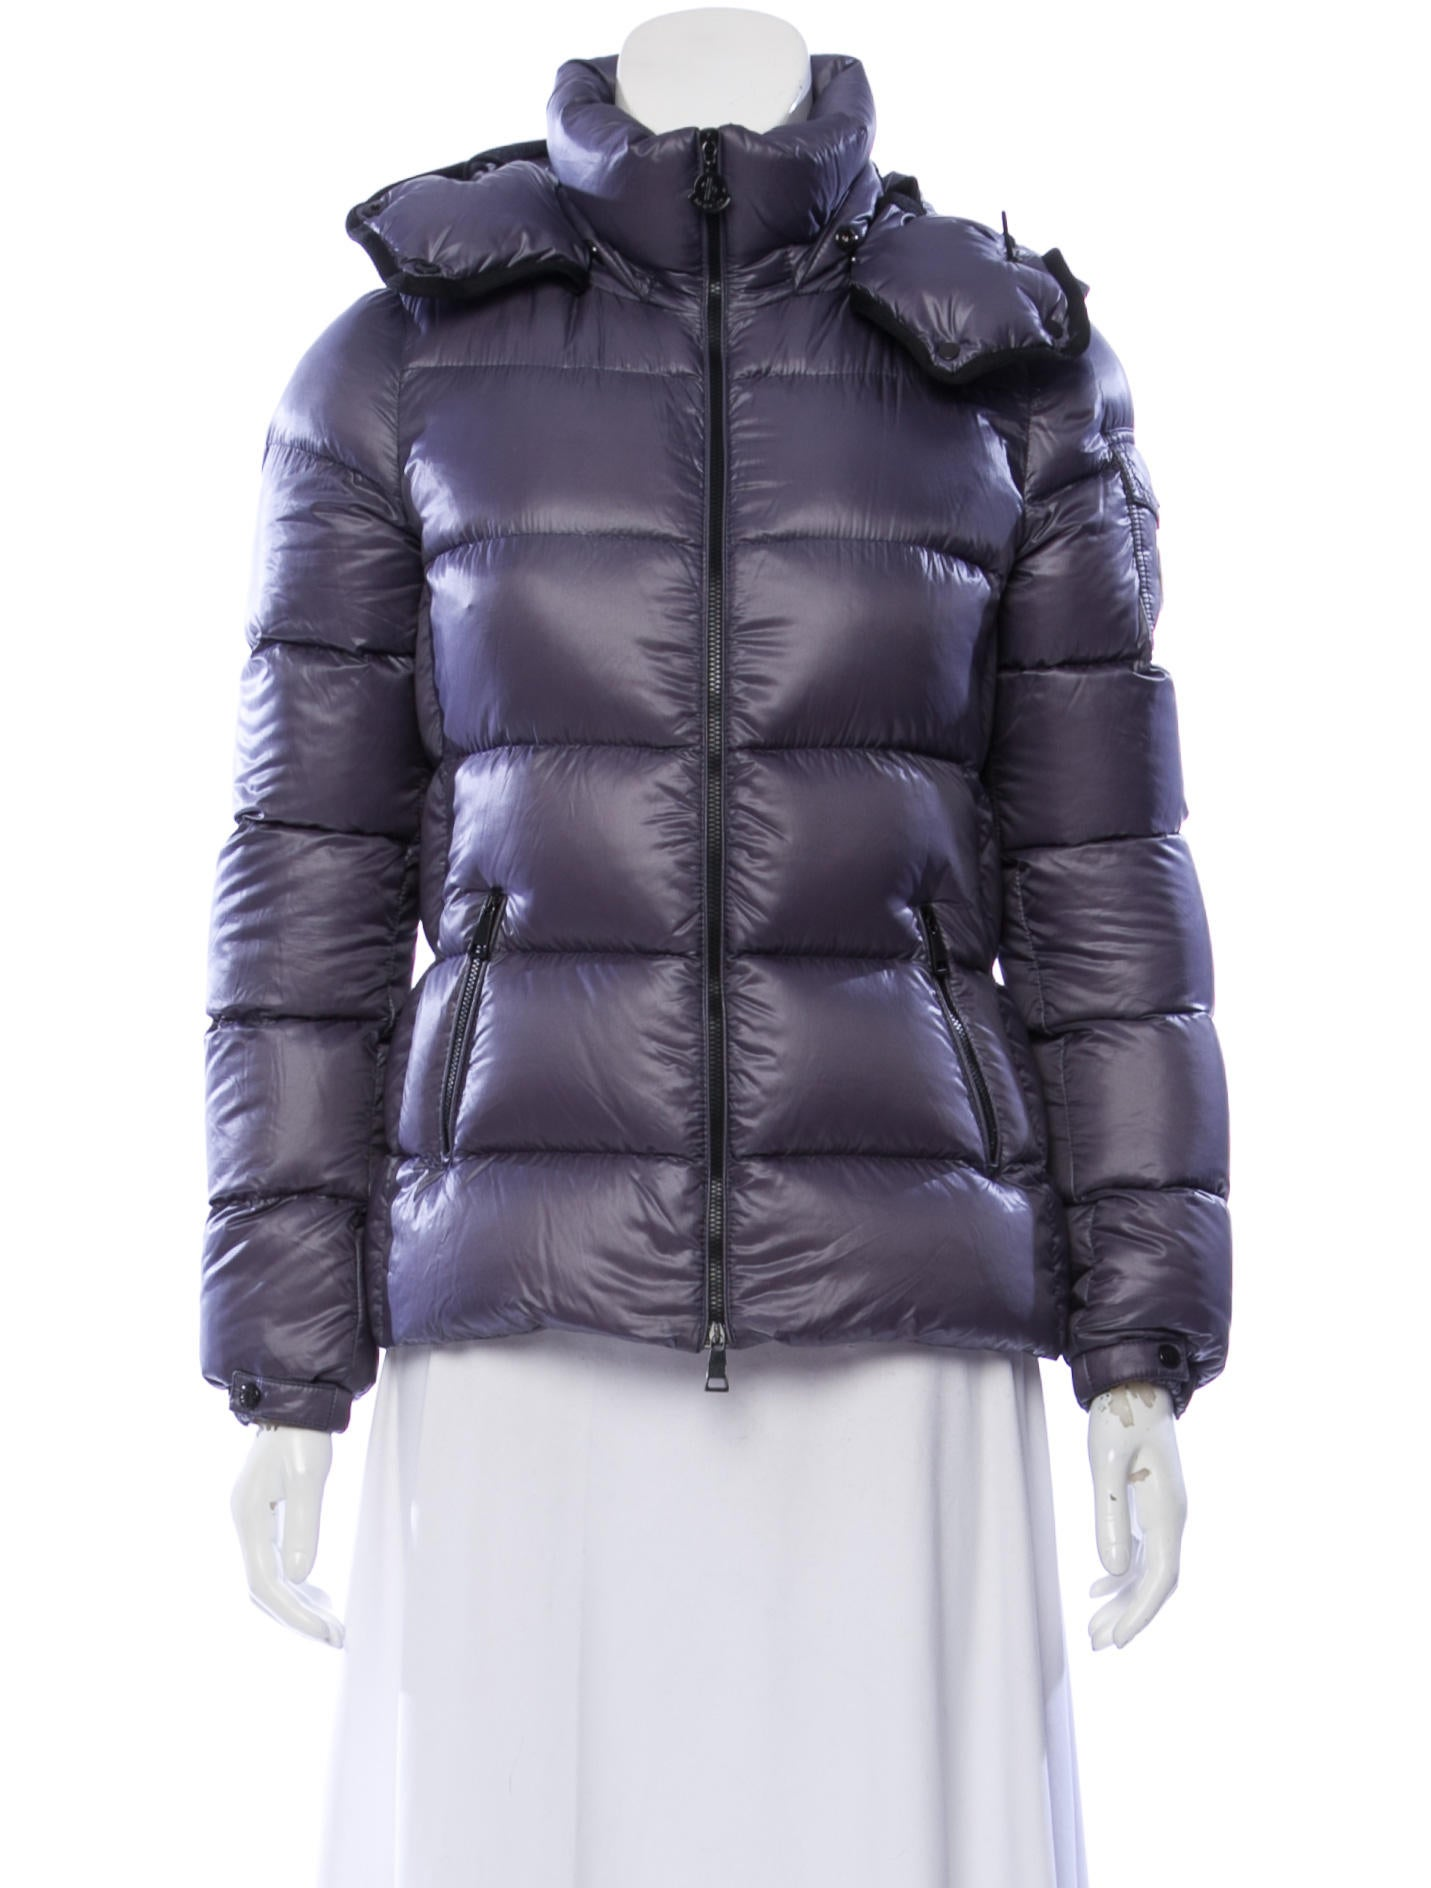 Moncler Berre Down Jacket Clothing MOC44412 | The RealReal